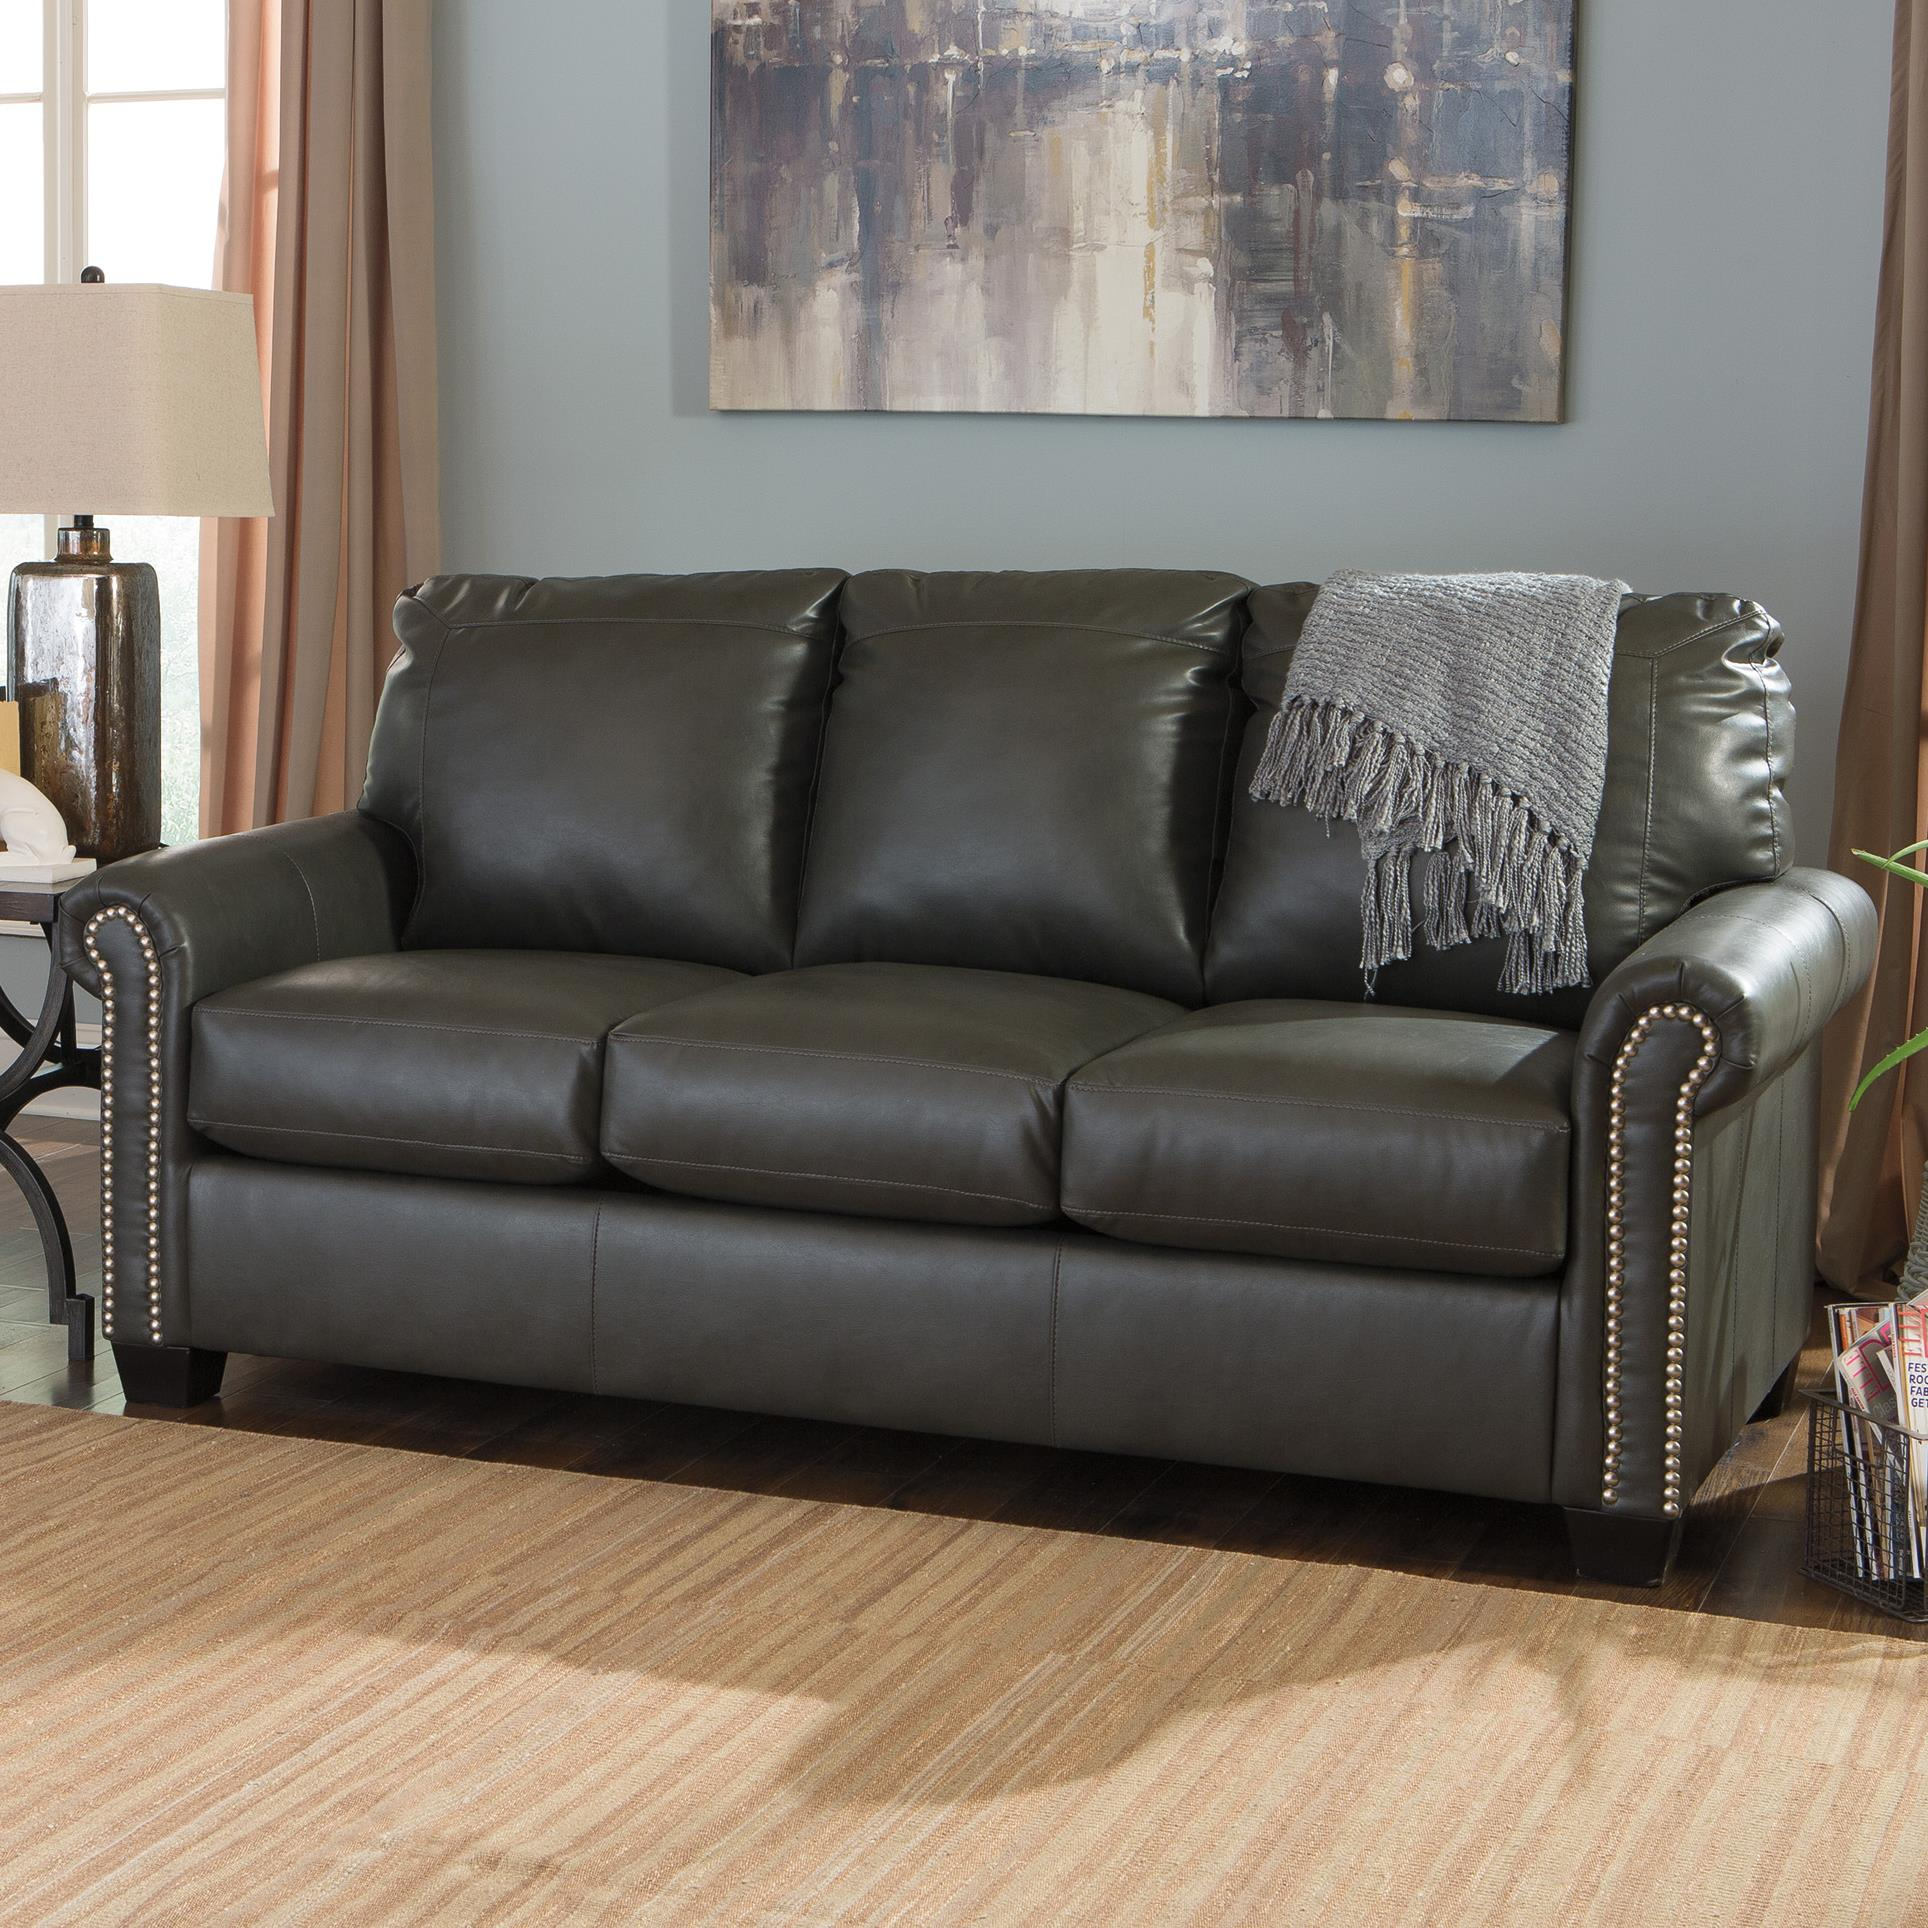 Signature Design By Ashley Lottie DuraBlend® Full Sofa Sleeper   Item  Number: 3800136